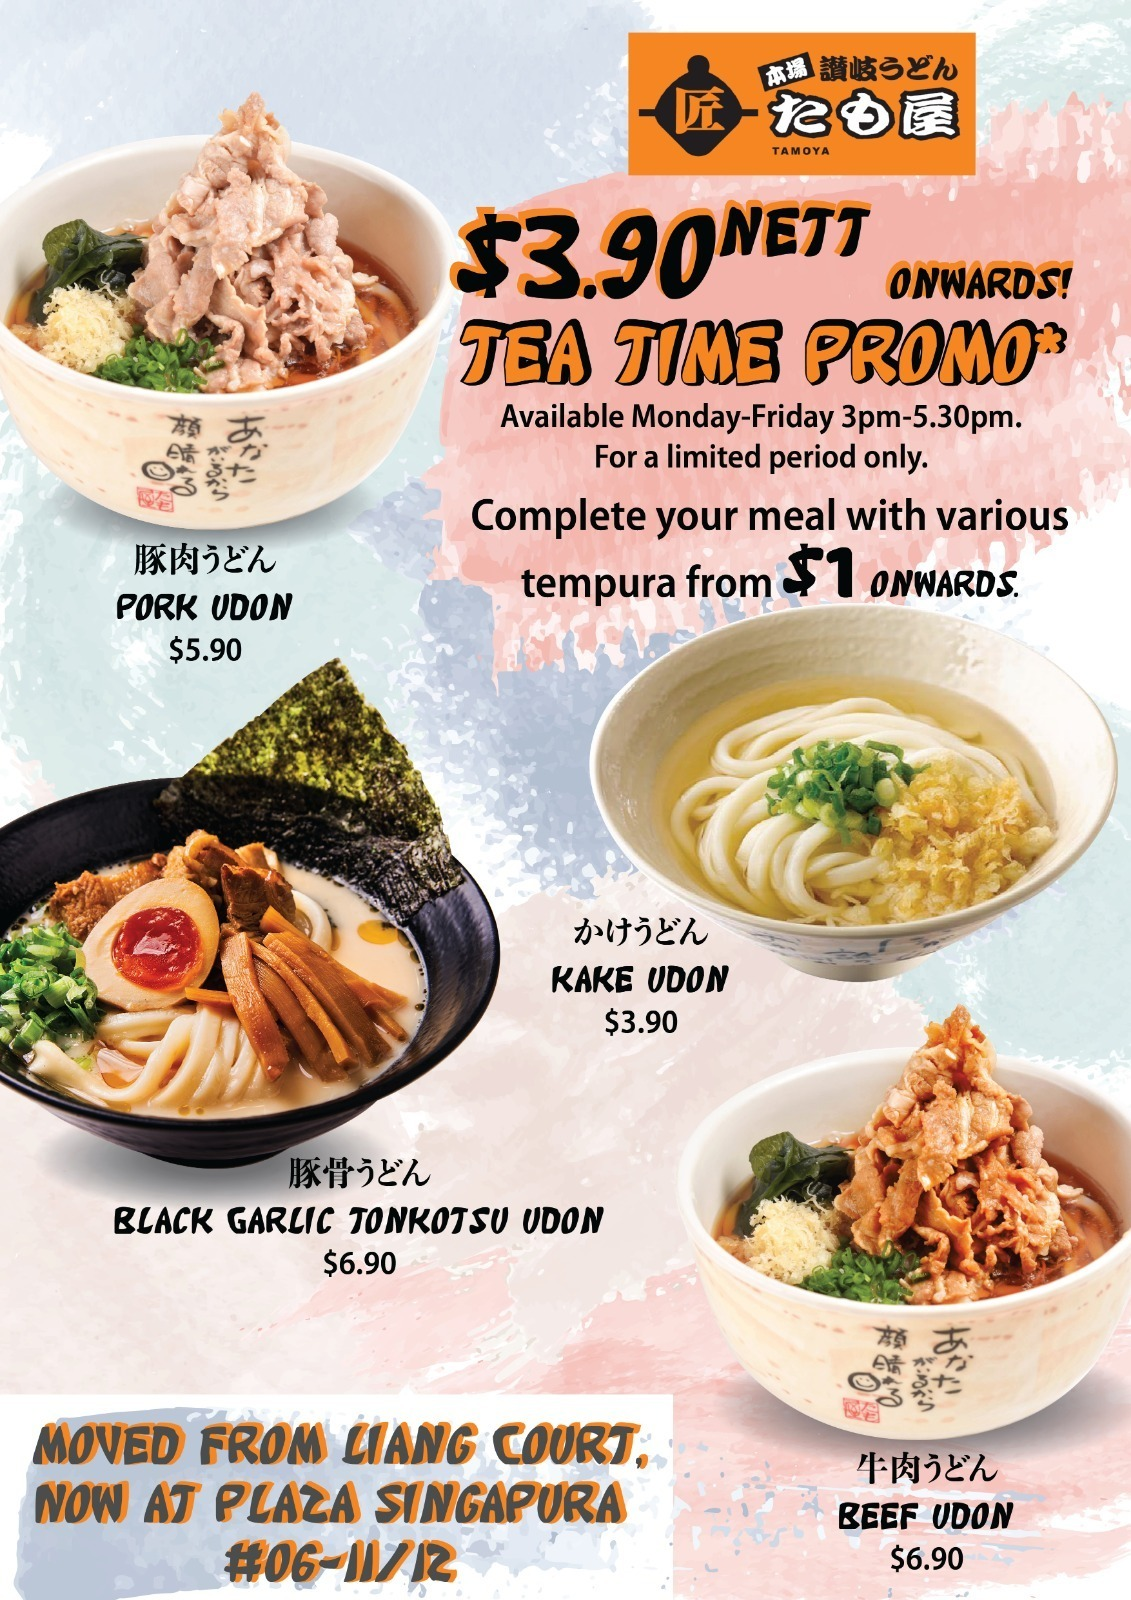 Tea Time Promo $3.90 Udon at Tamoya Udon, Plaza Singapura | Why Not Deals & Promotions